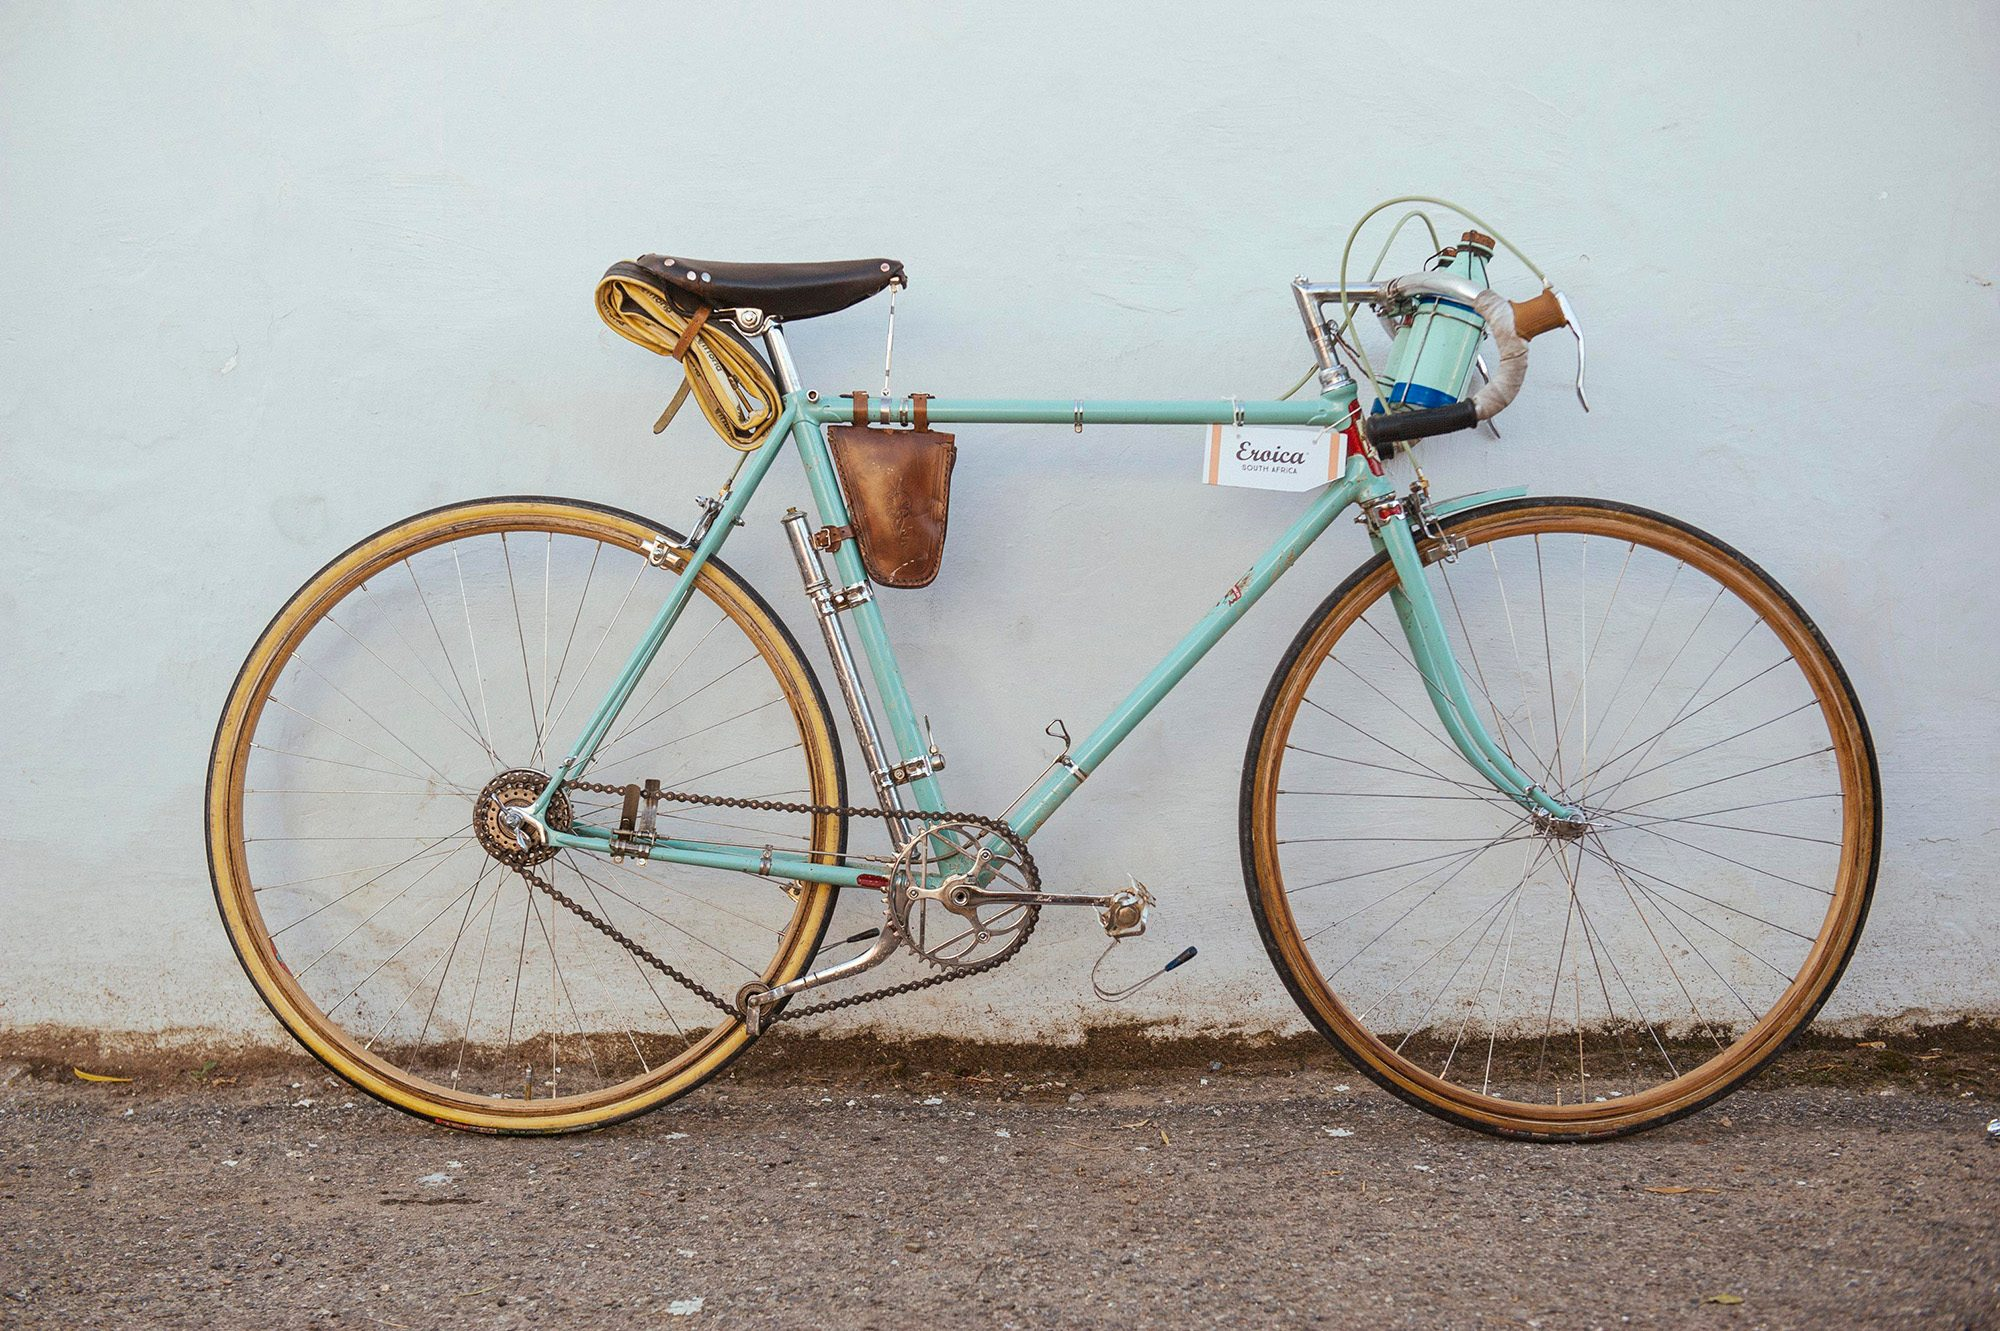 Eroica Rolls to South African Soil